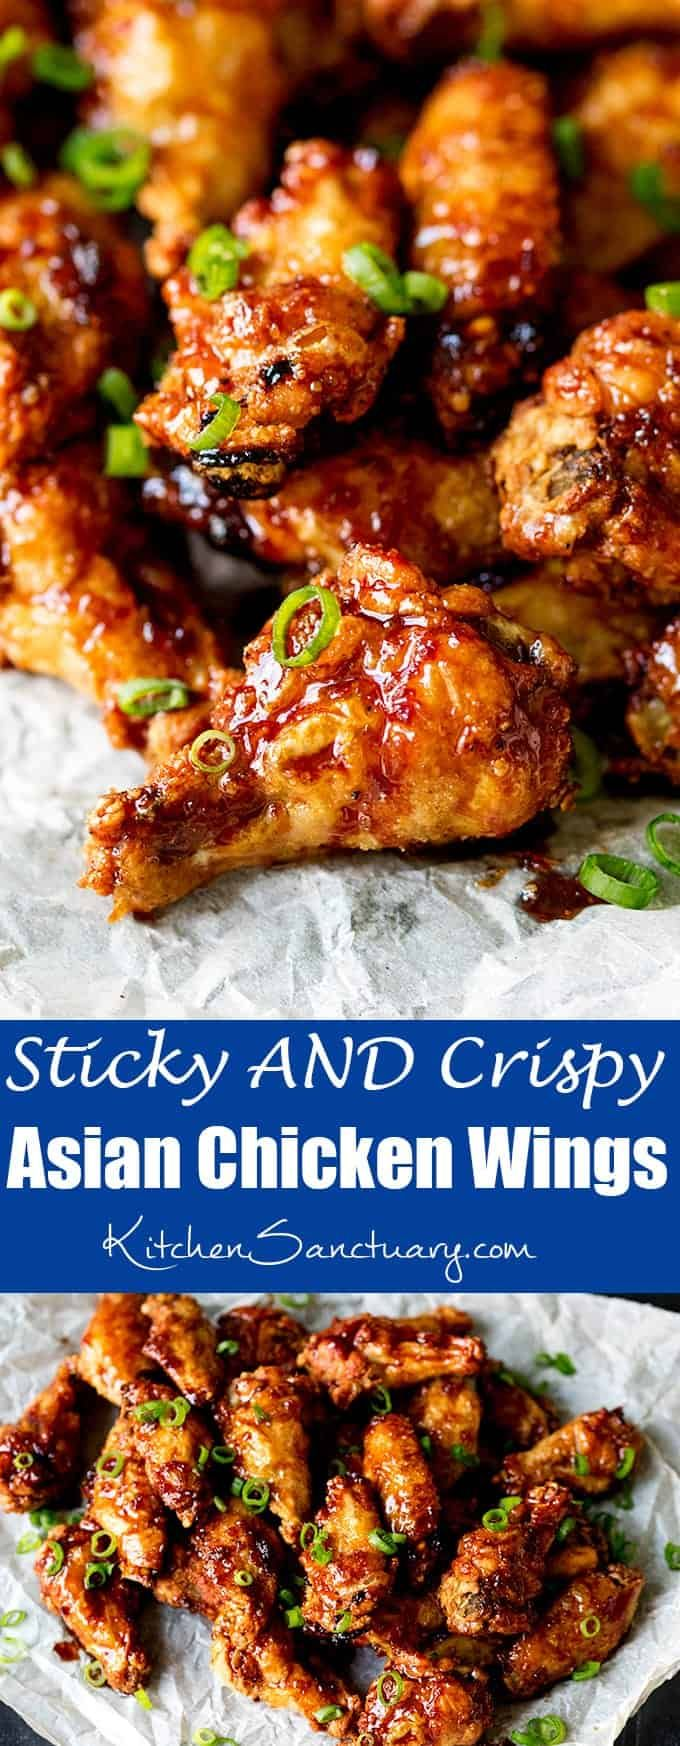 Sticky and Crispy Asian Chicken Wings. These Asian Chicken Wings are Sticky AND Crispy. The best party food ever! #ChickenWings #Wings #PartyFood #GameDay #Recipe #AsianFood